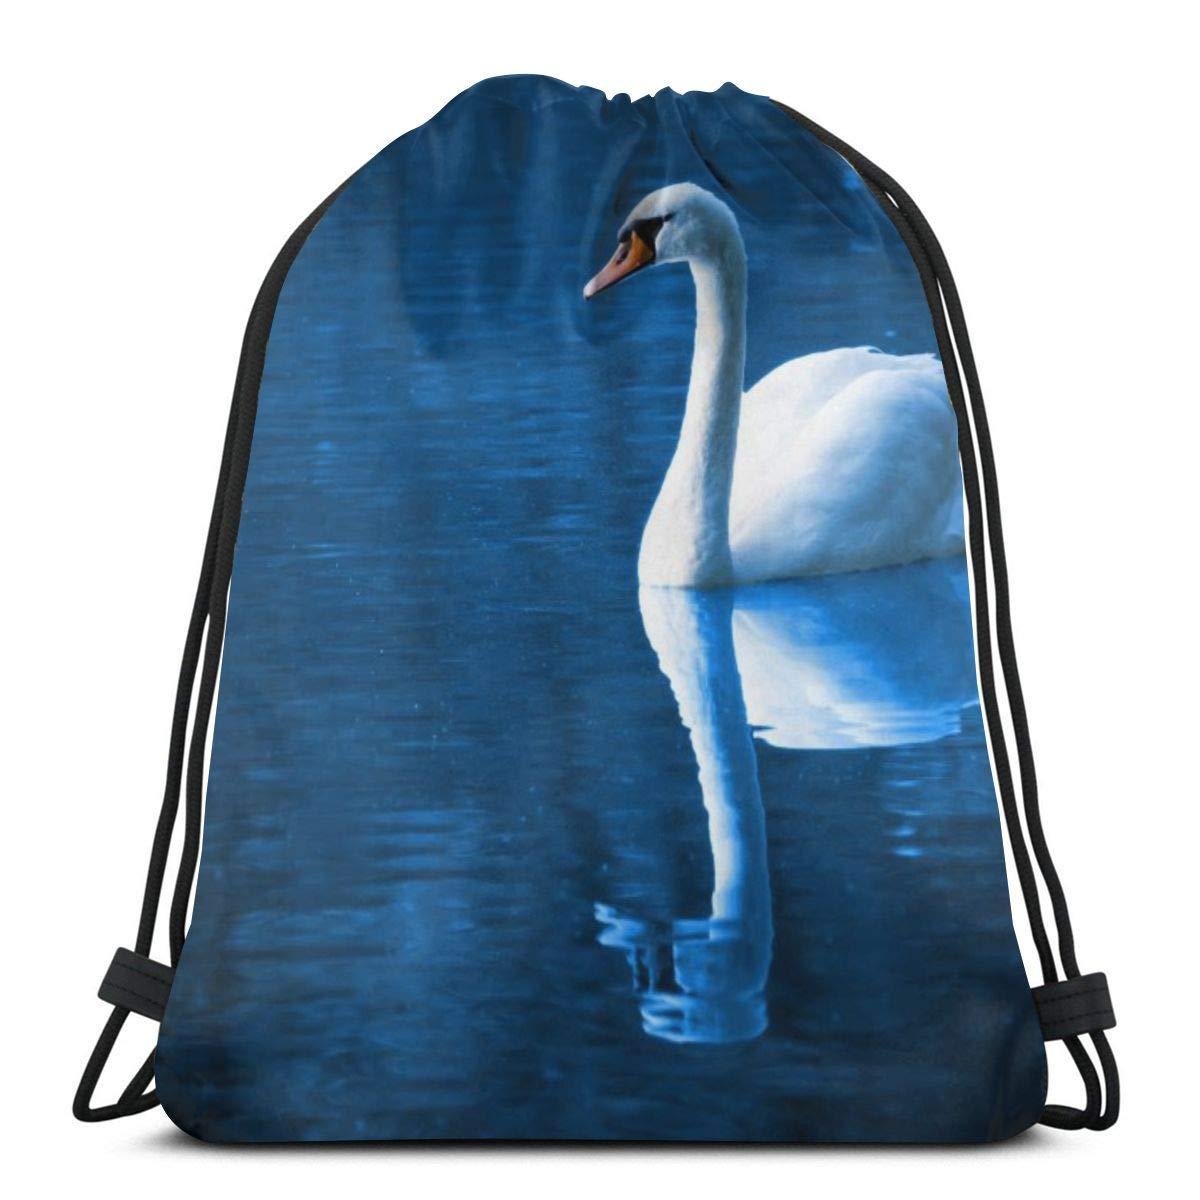 Beautiful Bird Swan Reflections Print Drawstring Backpack Rucksack Shoulder Bags Gym Bag for Adult Child 16.9x14.1 Accessories